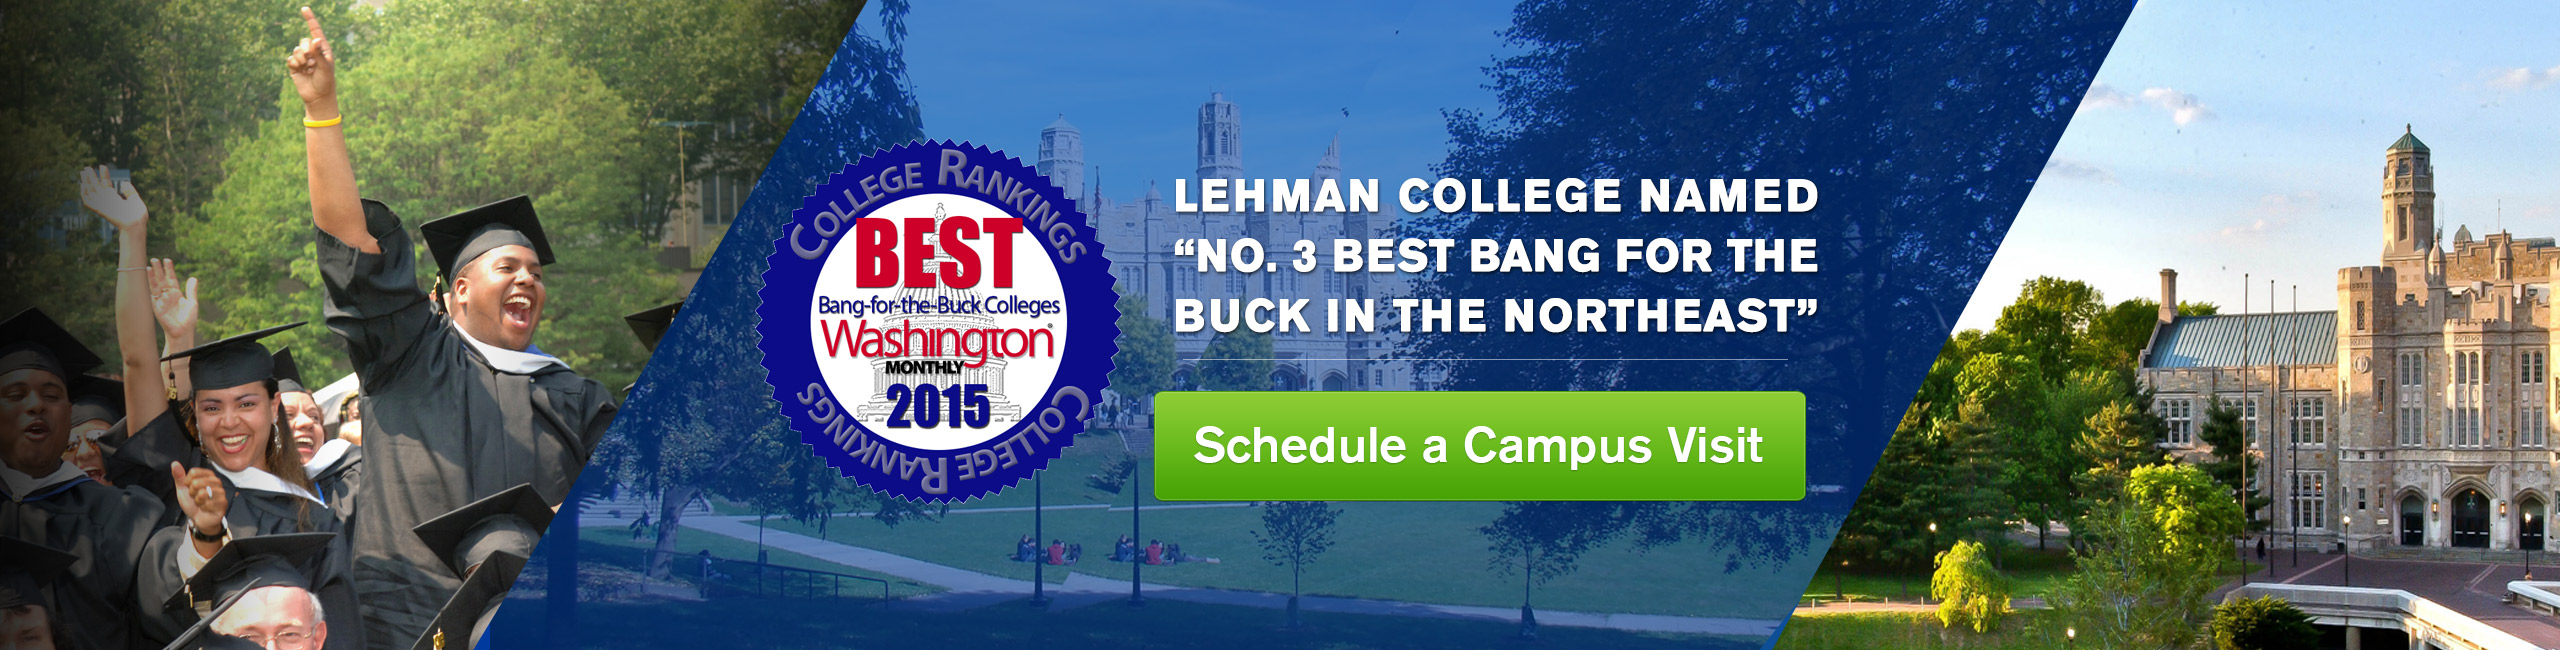 Lehman College Honored: #3 Best Bang for the Buck in the Northeast